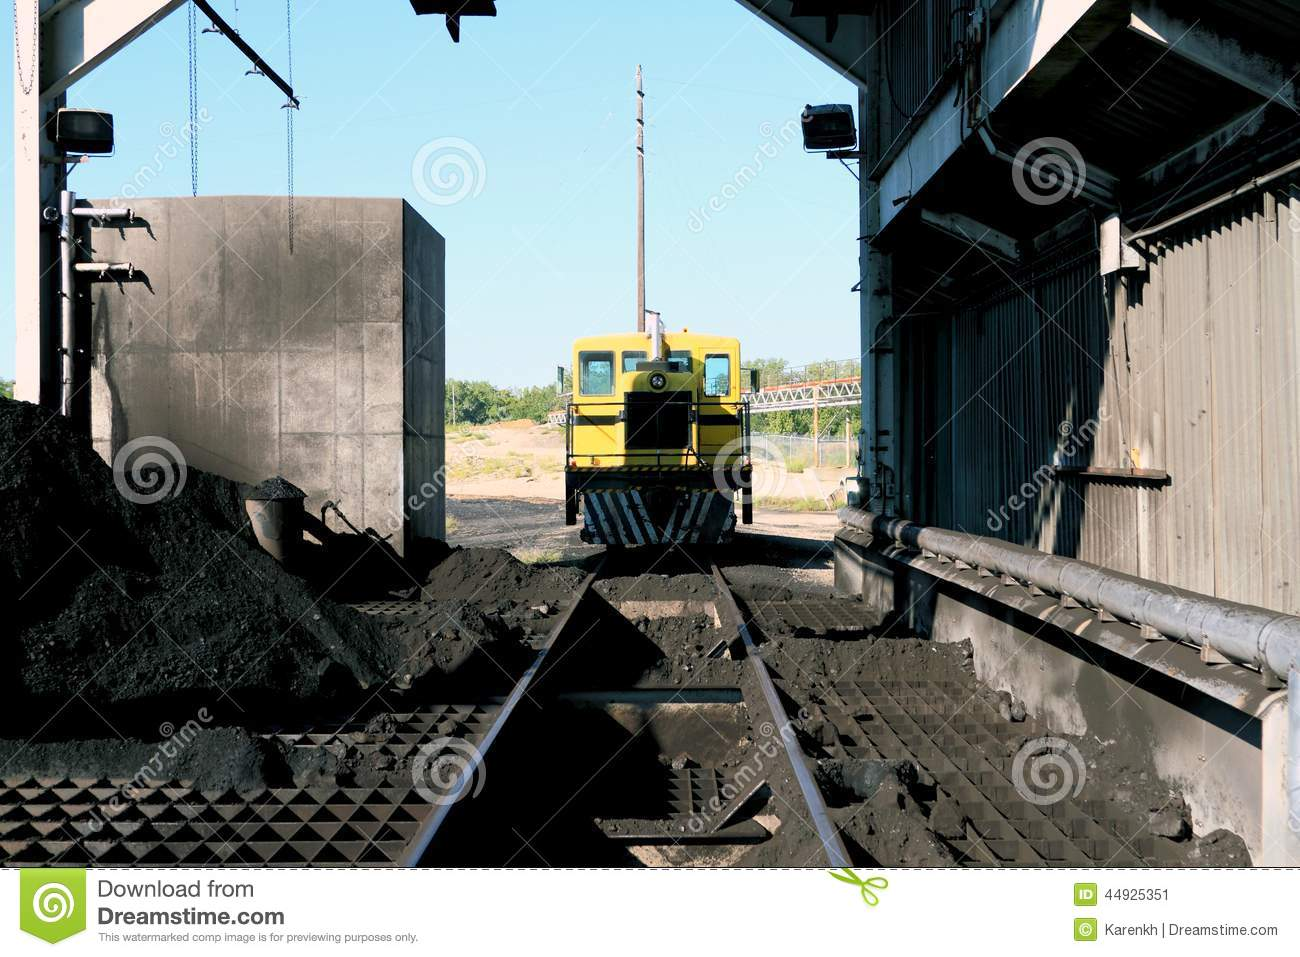 Snow Plough Car >> Railway Machinery. Royalty-Free Stock Photography | CartoonDealer.com #72442217